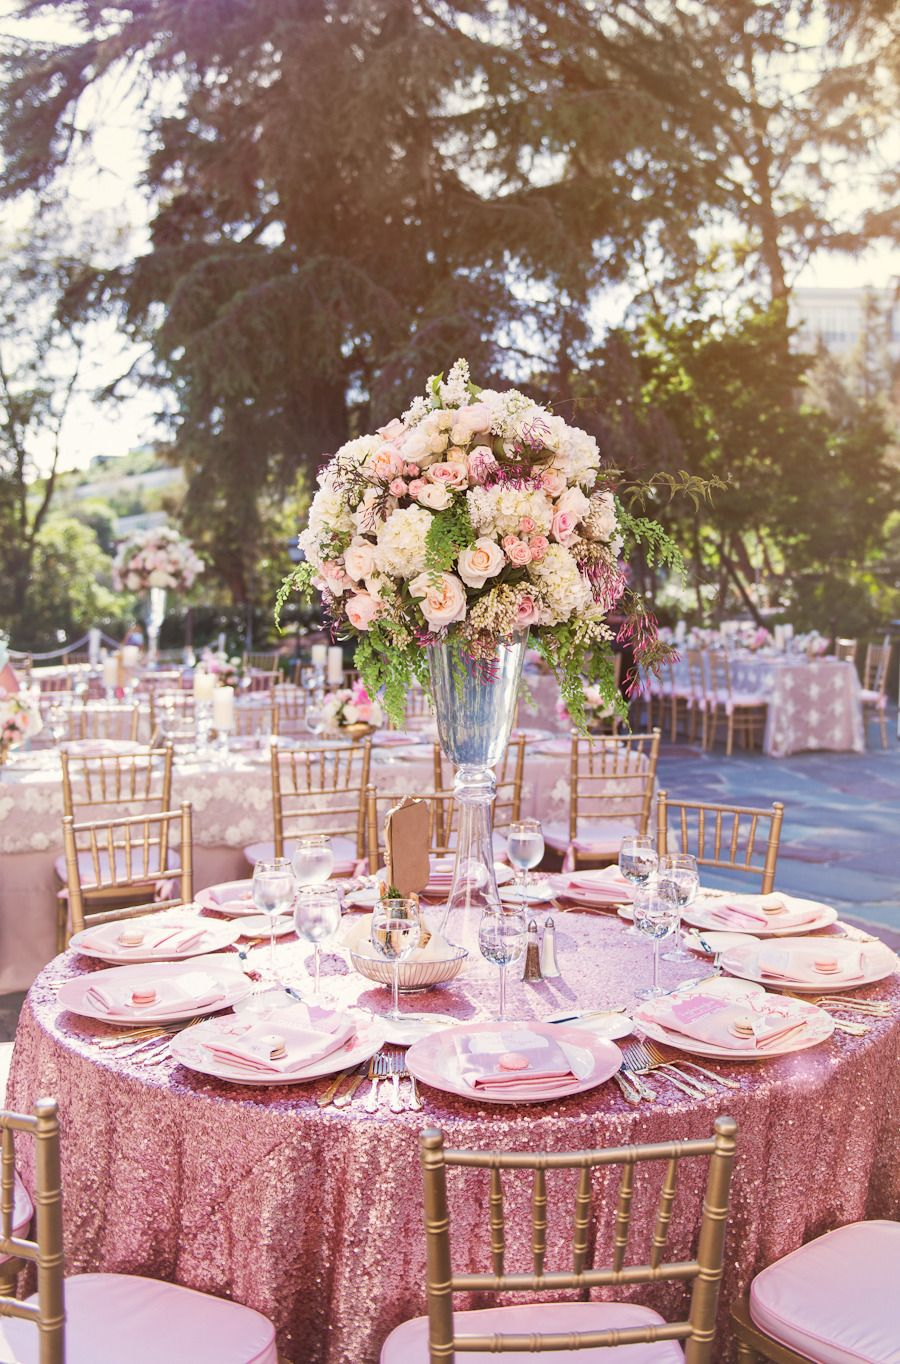 Beverly hills wedding at greystone mansion receptions for Wedding reception table linen ideas